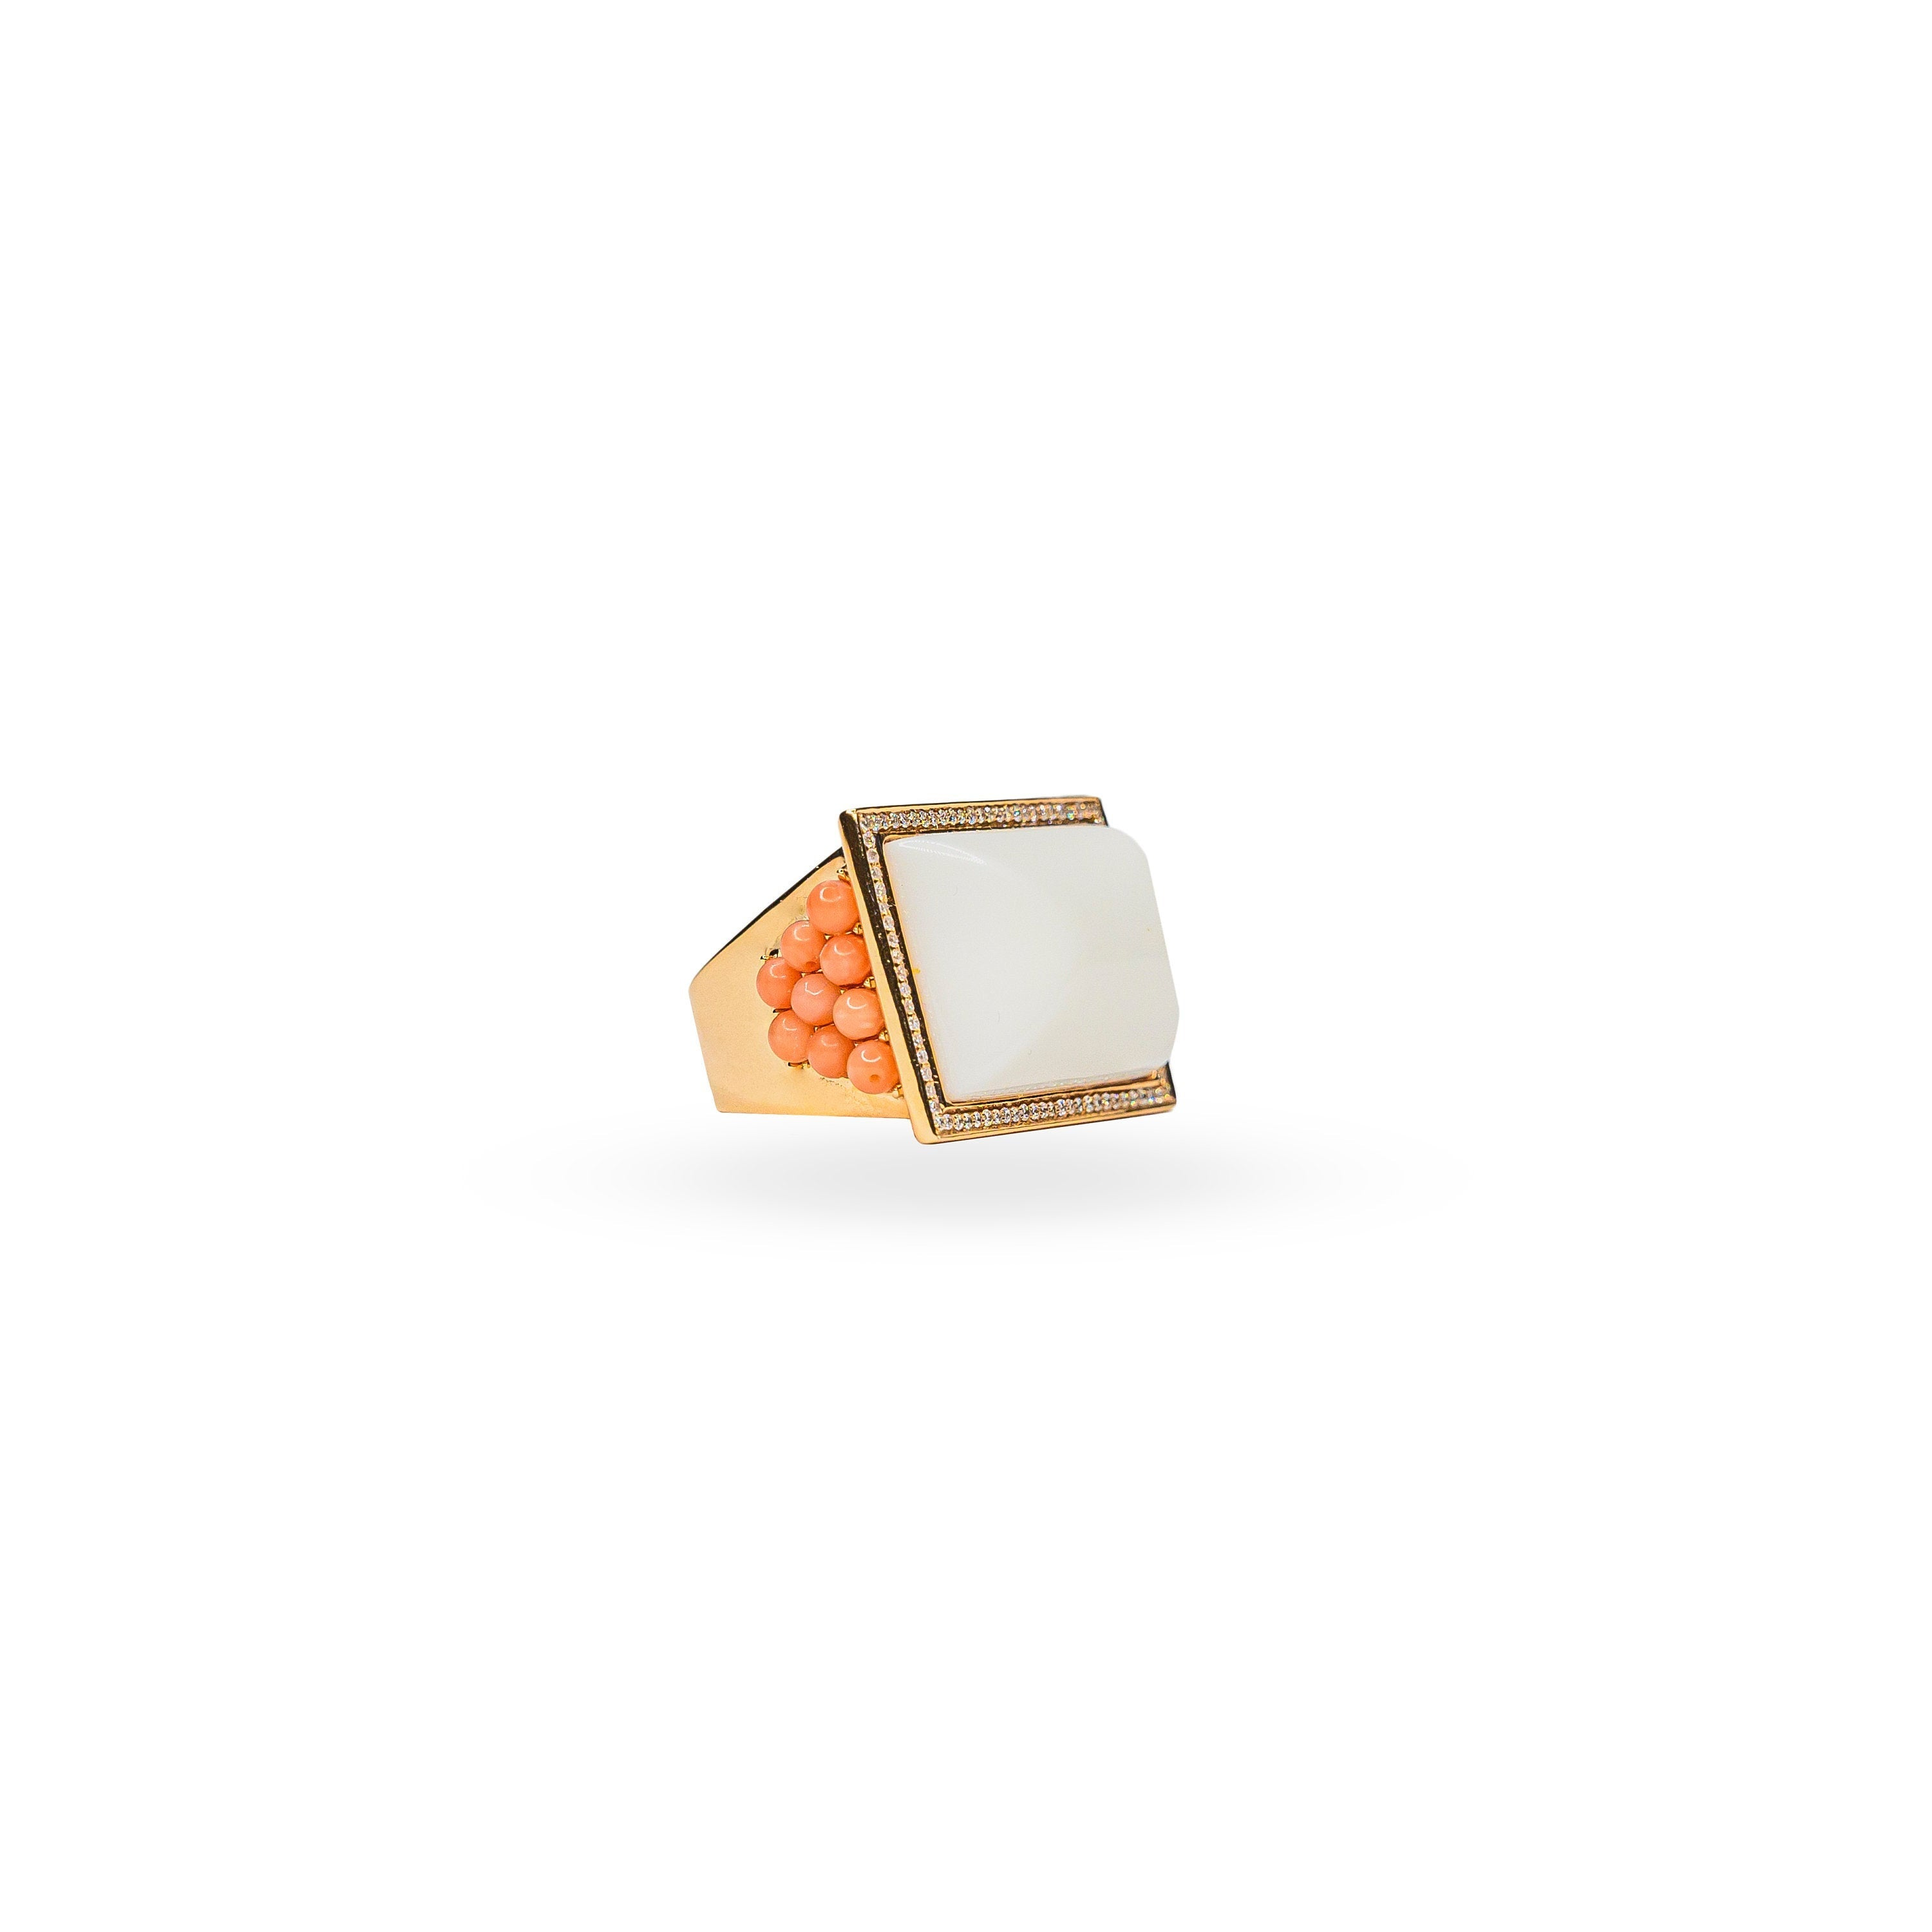 18K Rose Gold, Diamonds, Coral & White Agate Statement Cocktail Ring